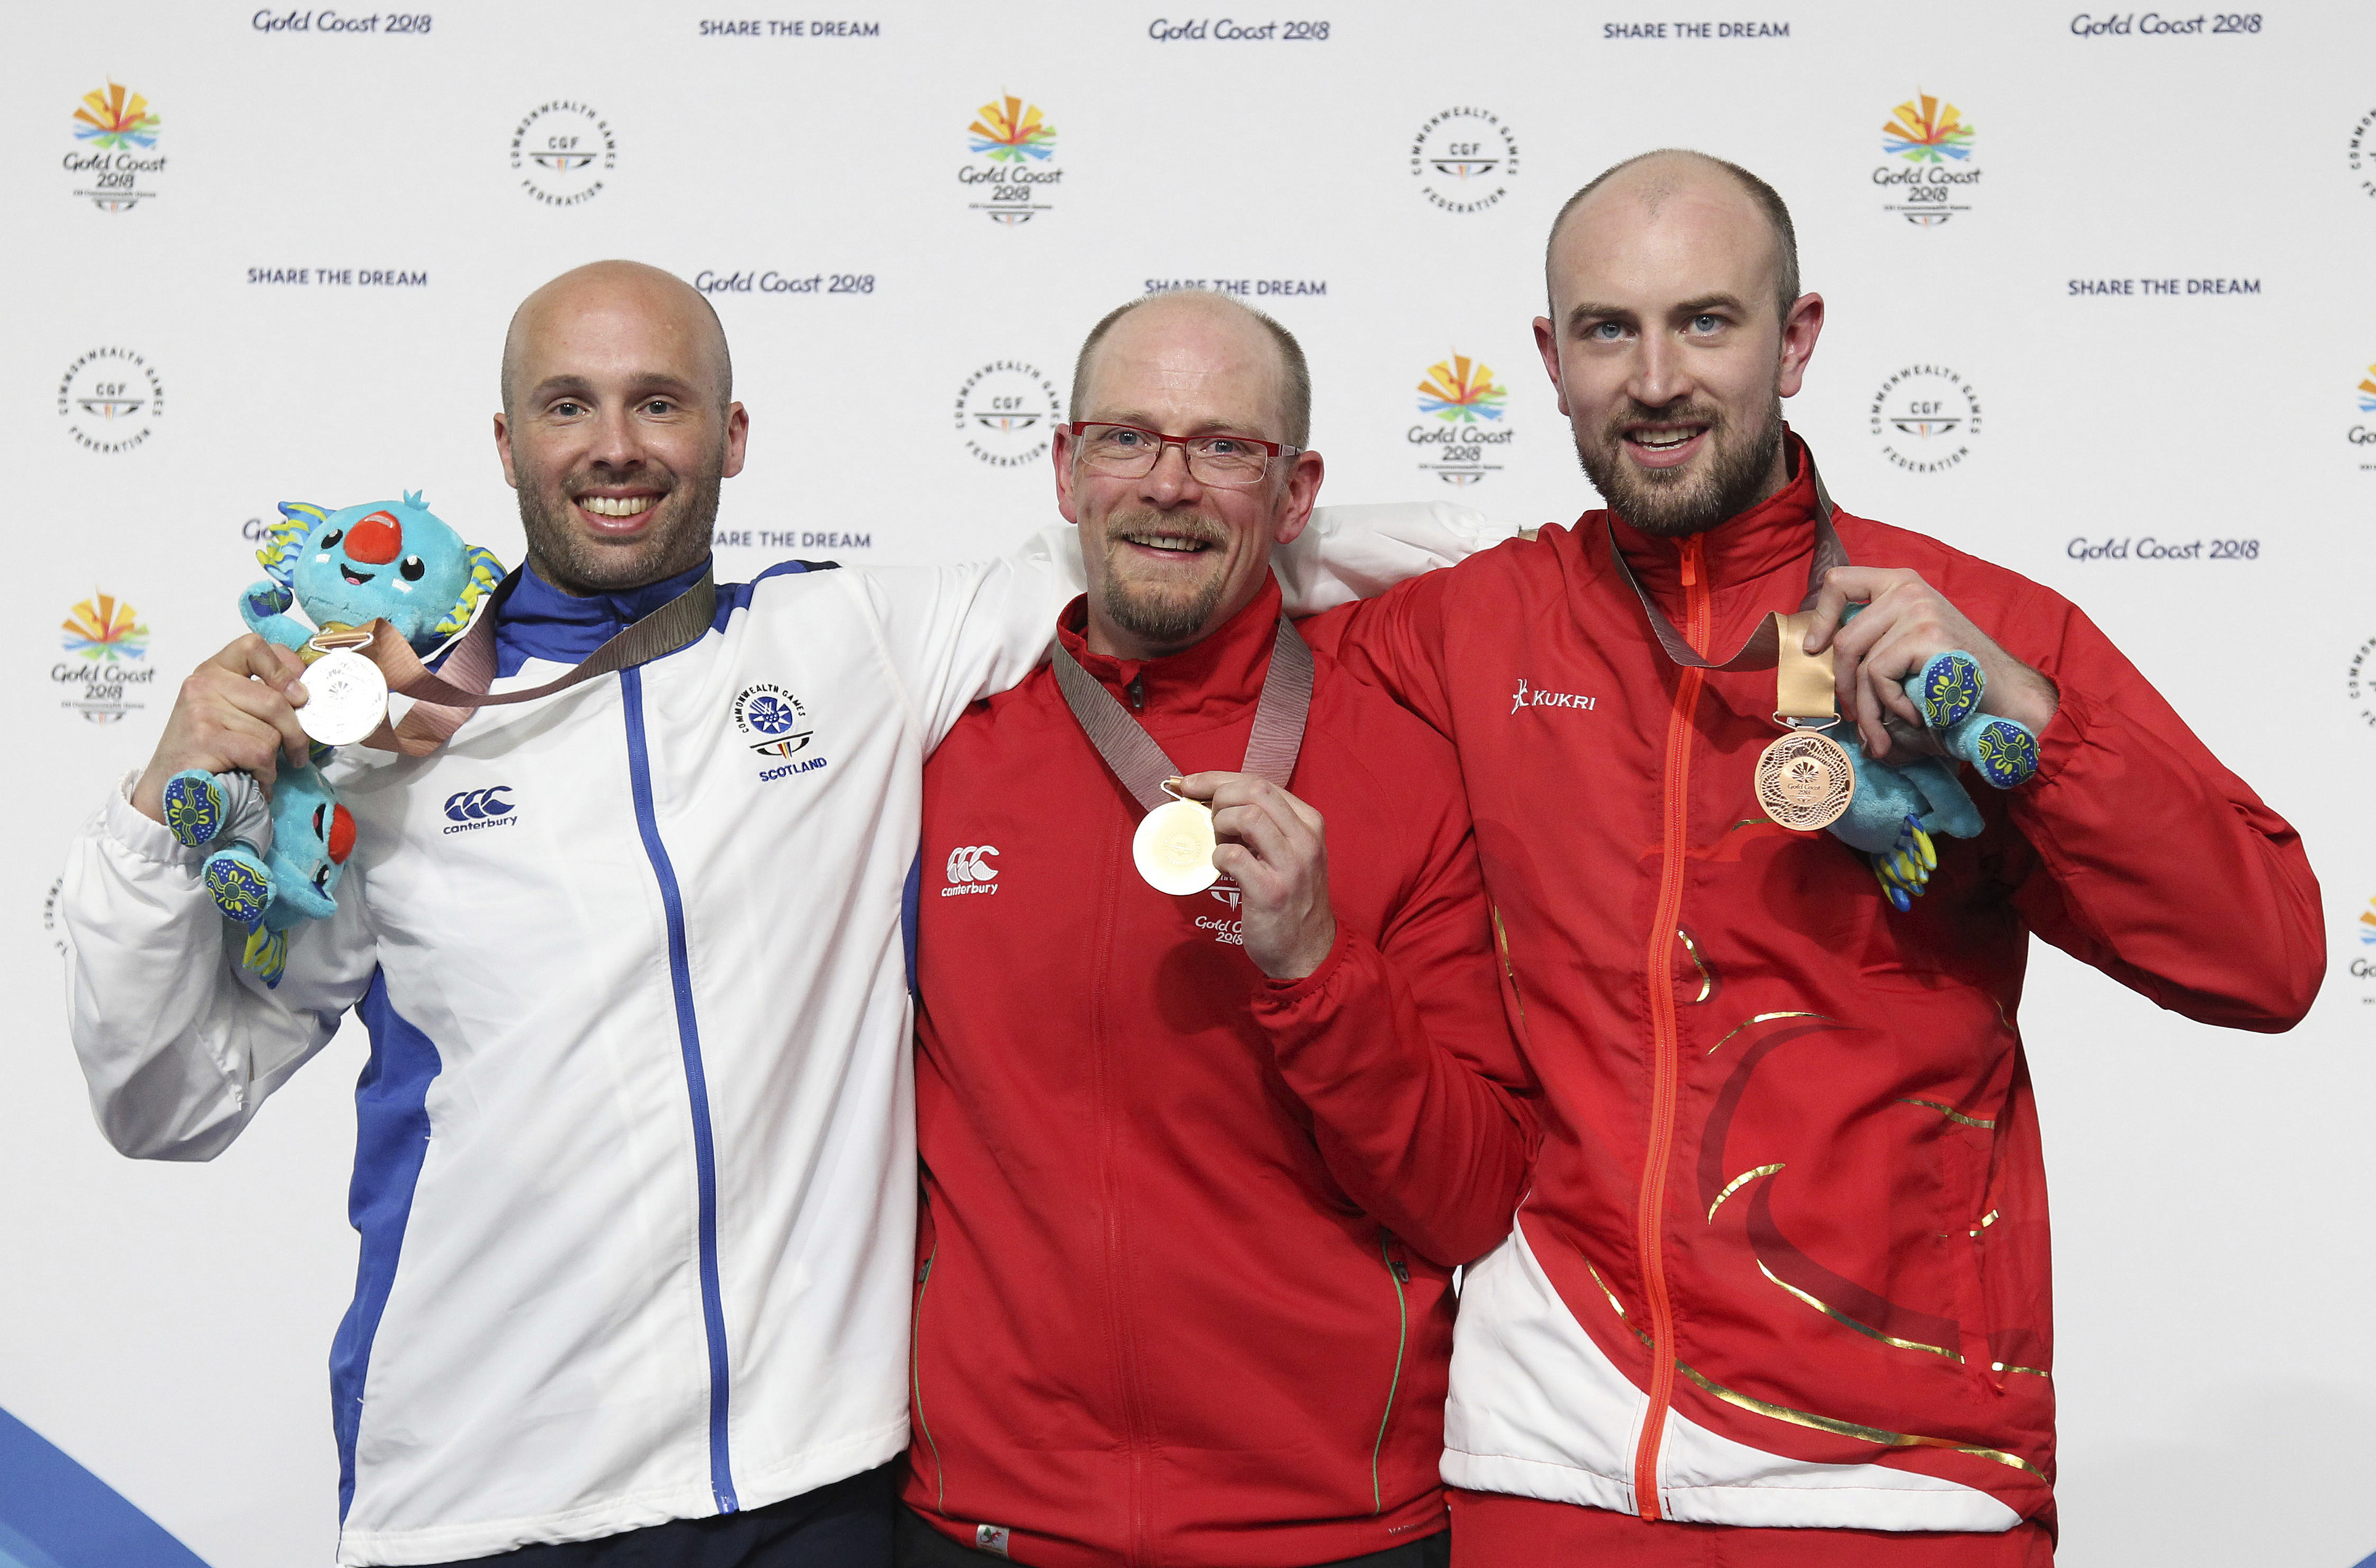 Neil Stirton of Scotland, left, silver medal, David Phelps of Wales, gold medal, center, and Kenneth Parr of England, bronze medal, right, pose during the award ceremony for the men's 50m rifle prone final at the Belmont Shooting Centre during the 2018 Commonwealth Games in Brisbane, Australia.